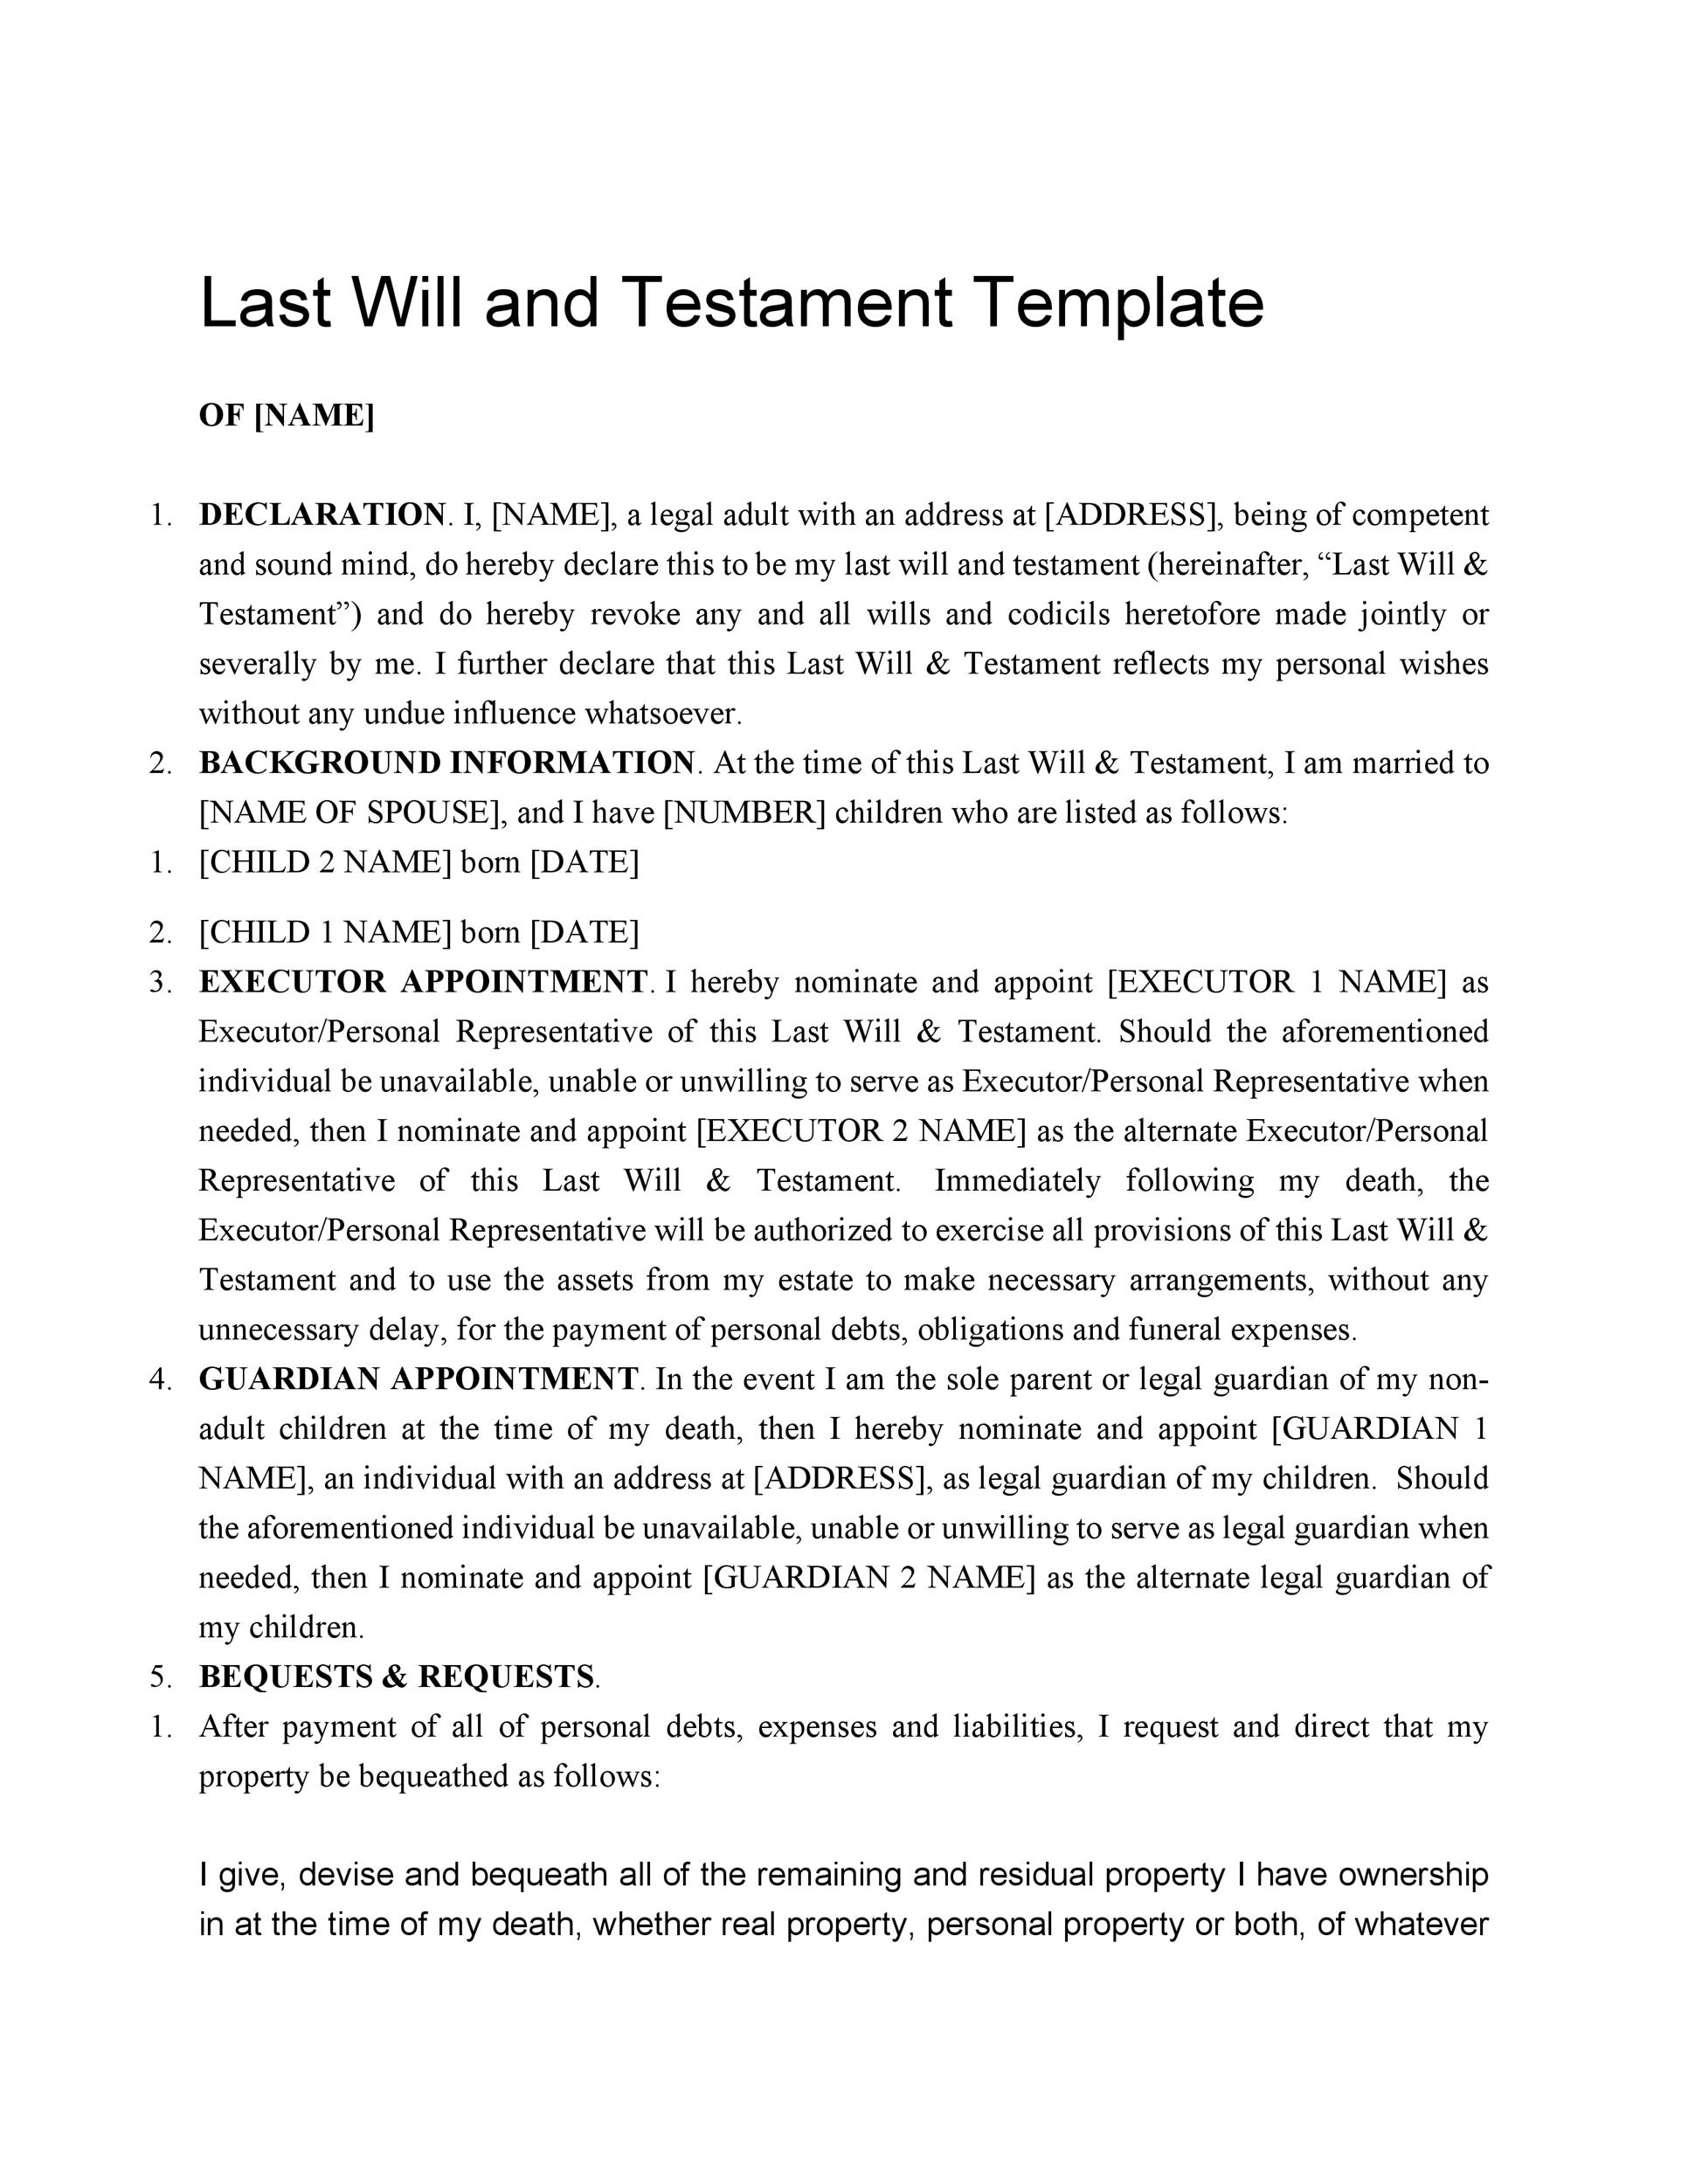 Free Last will and testament template 06